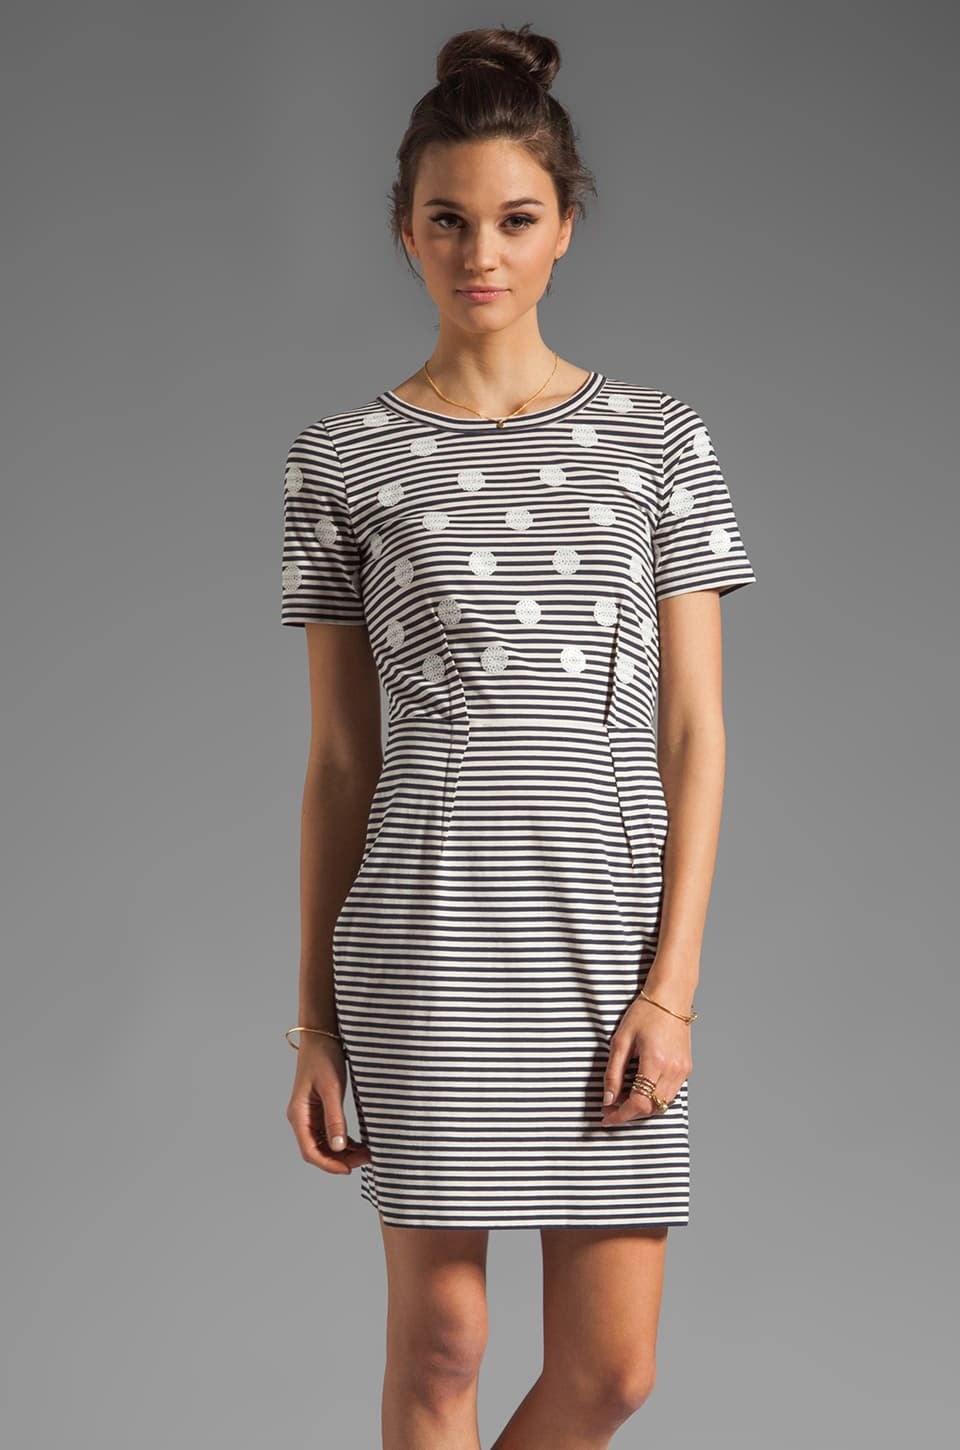 Marc by Marc Jacobs Resort Willa Dotted Jersey Dress in Tapioca Multi